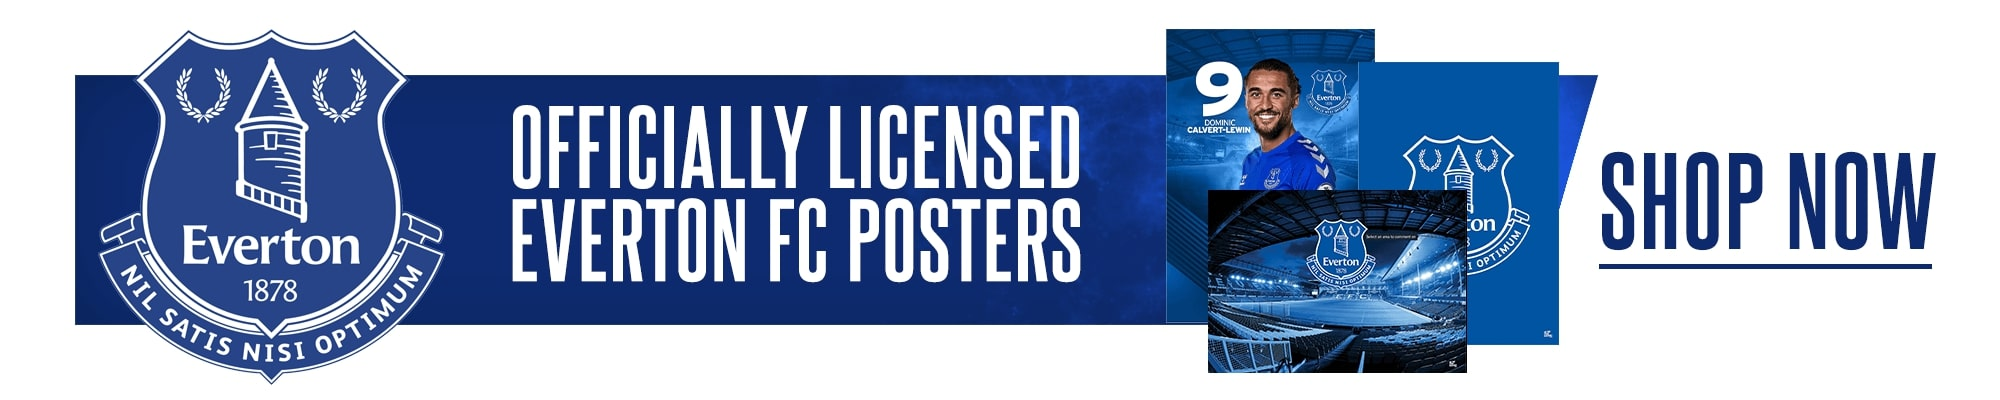 Official Everton Posters